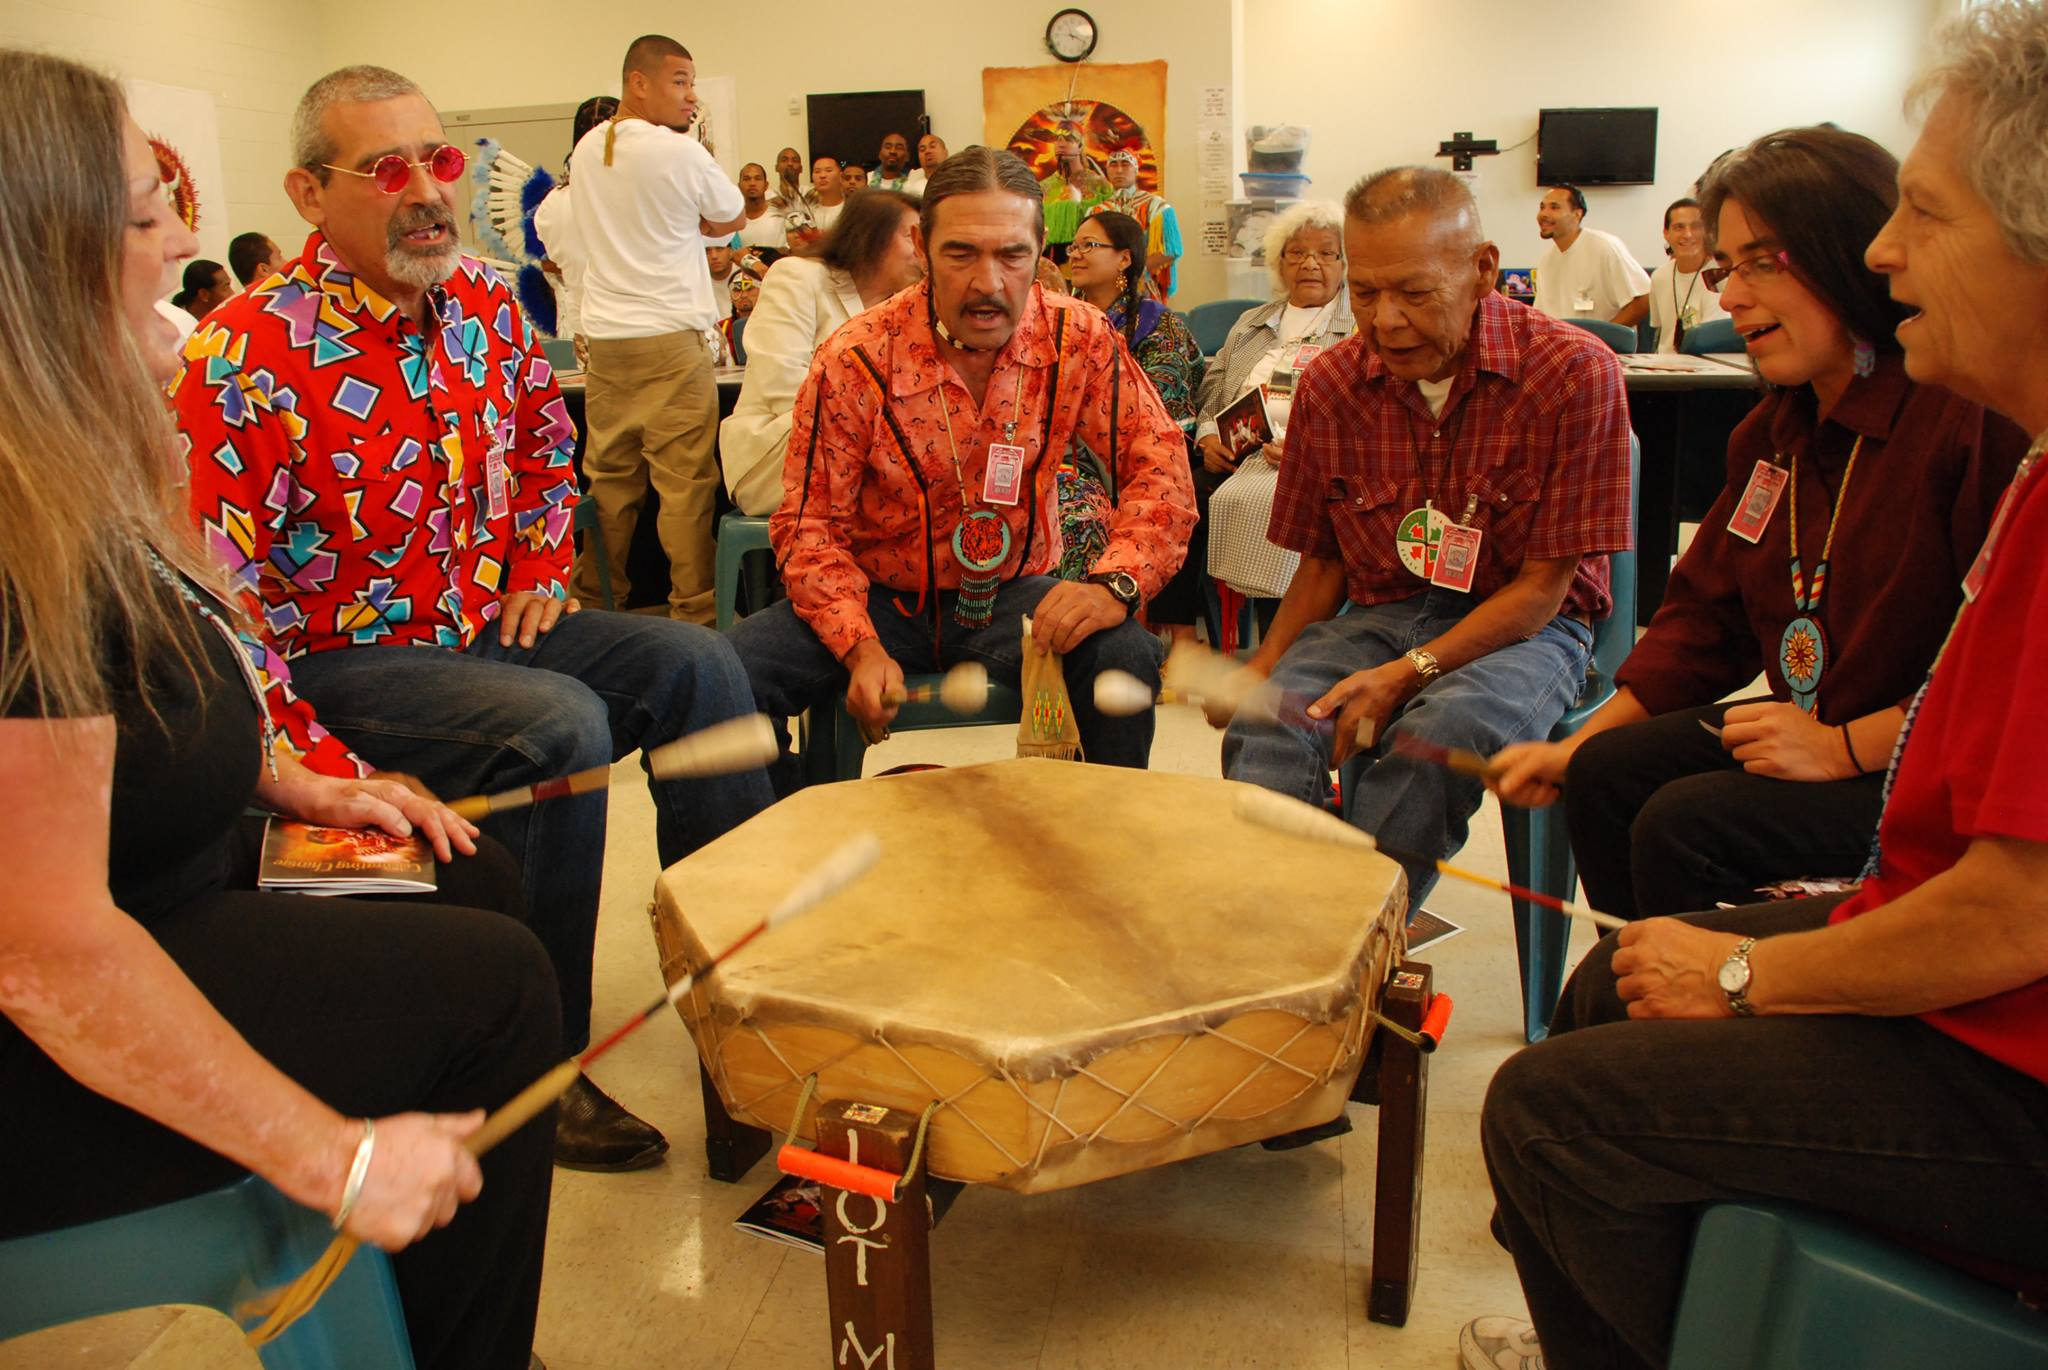 doc-pow-wow-drum-circle.jpg